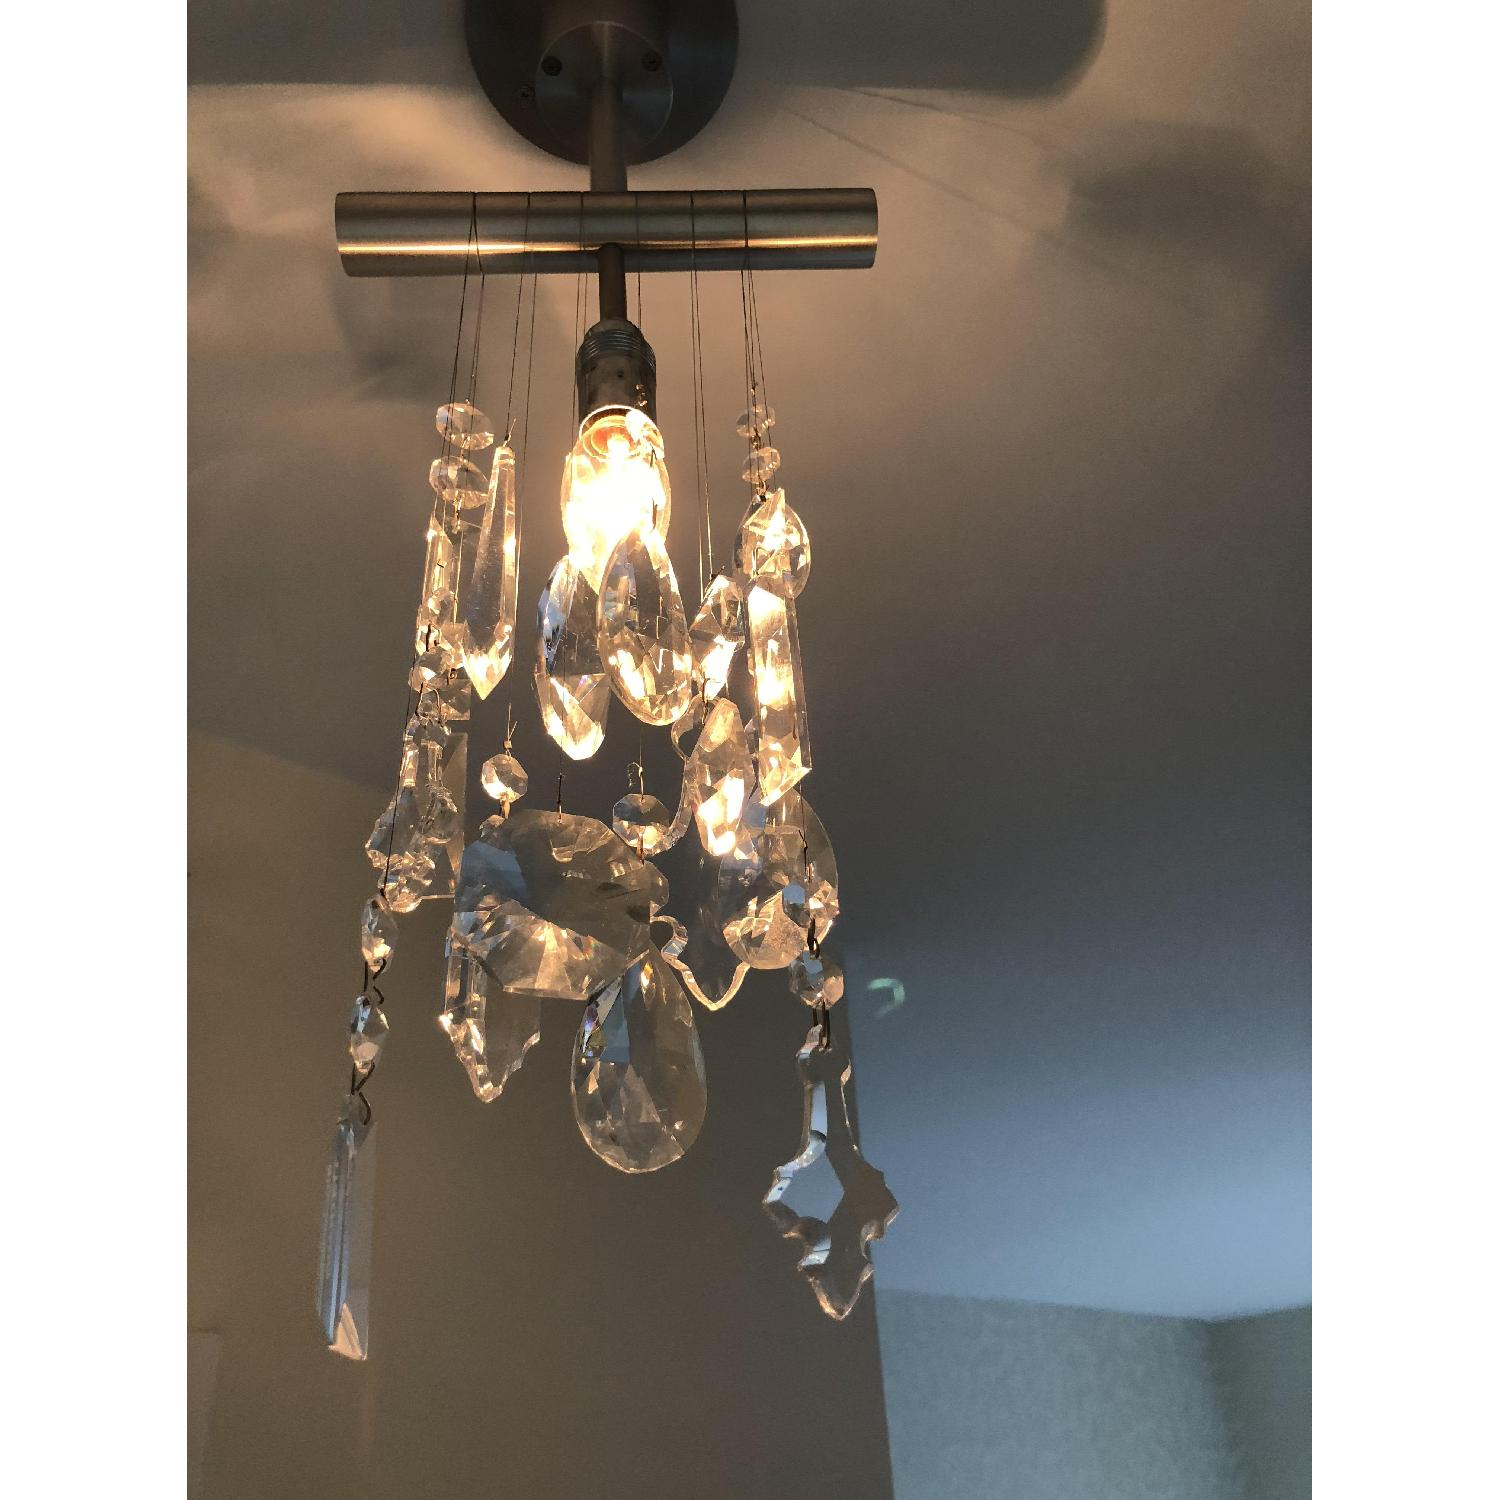 Nostraforma Crystal Ceiling Ceiling Lamp - image-1